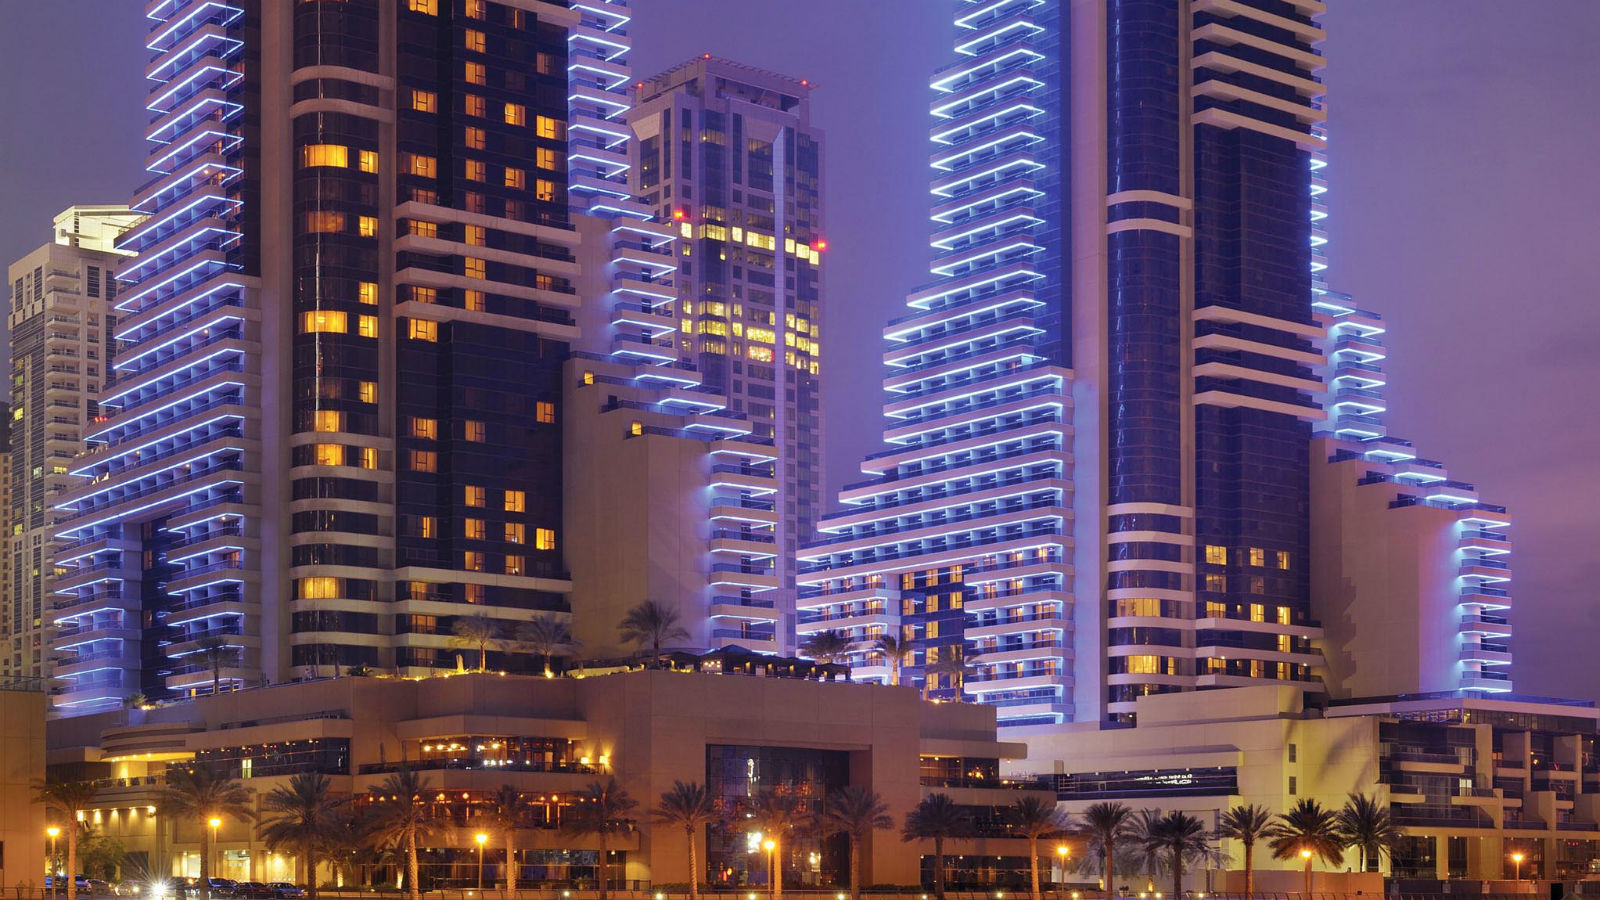 The Iconic Grosvenor House Towers